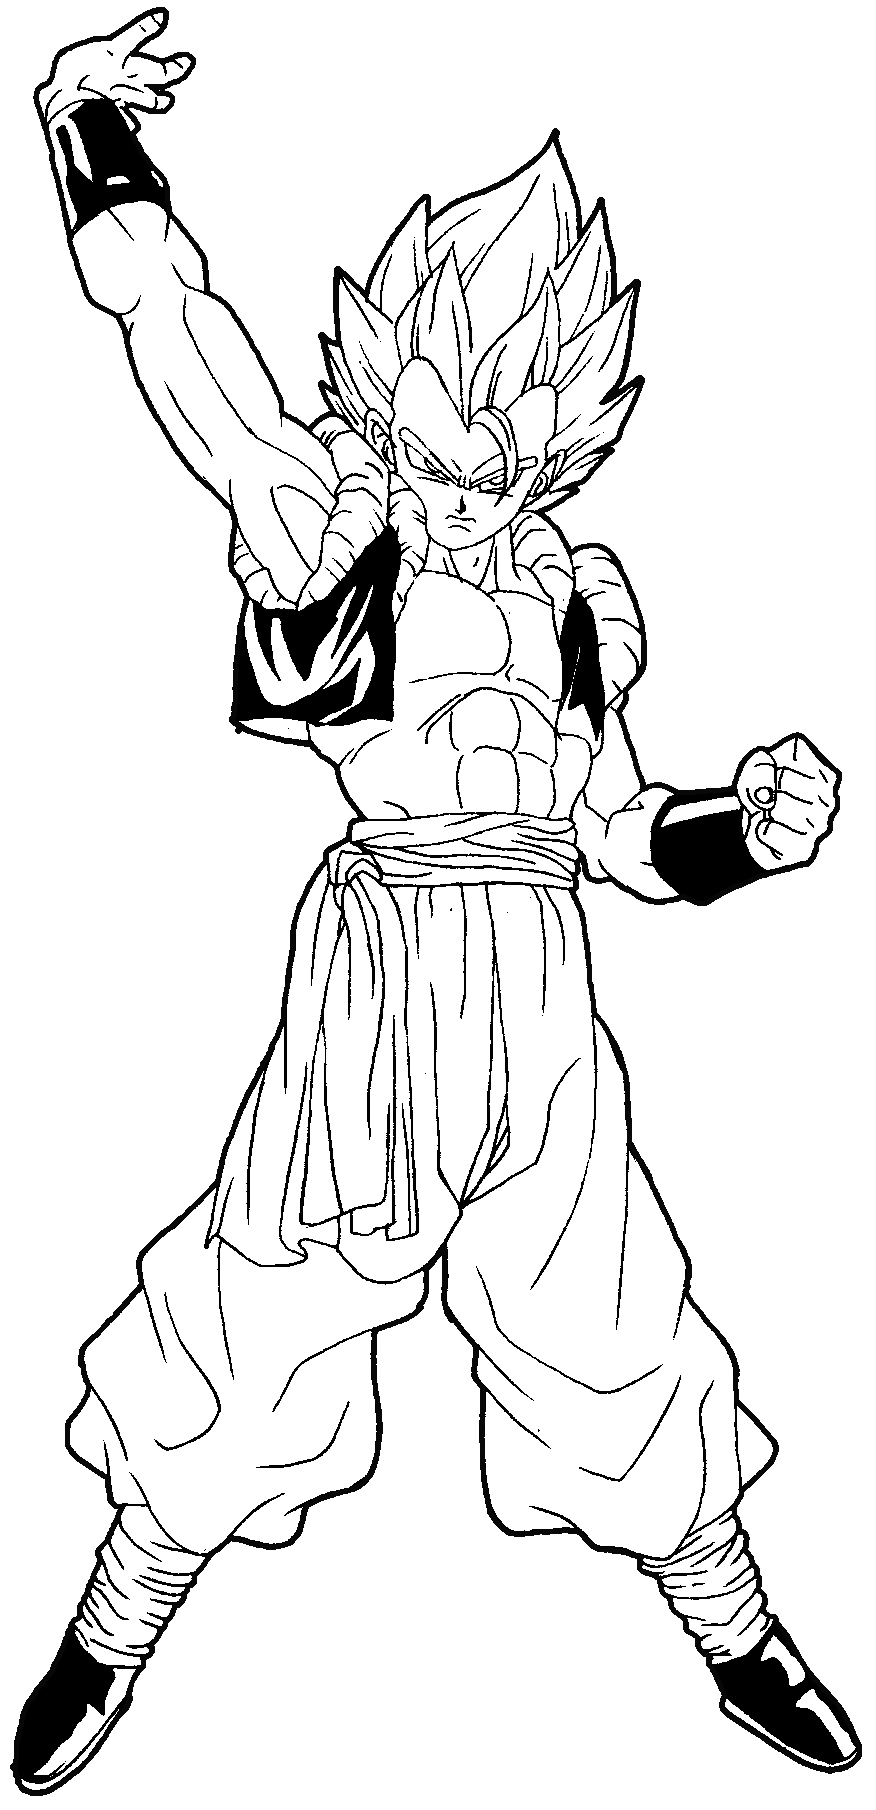 How to draw gogeta from dragon ball z in easy steps tutorial